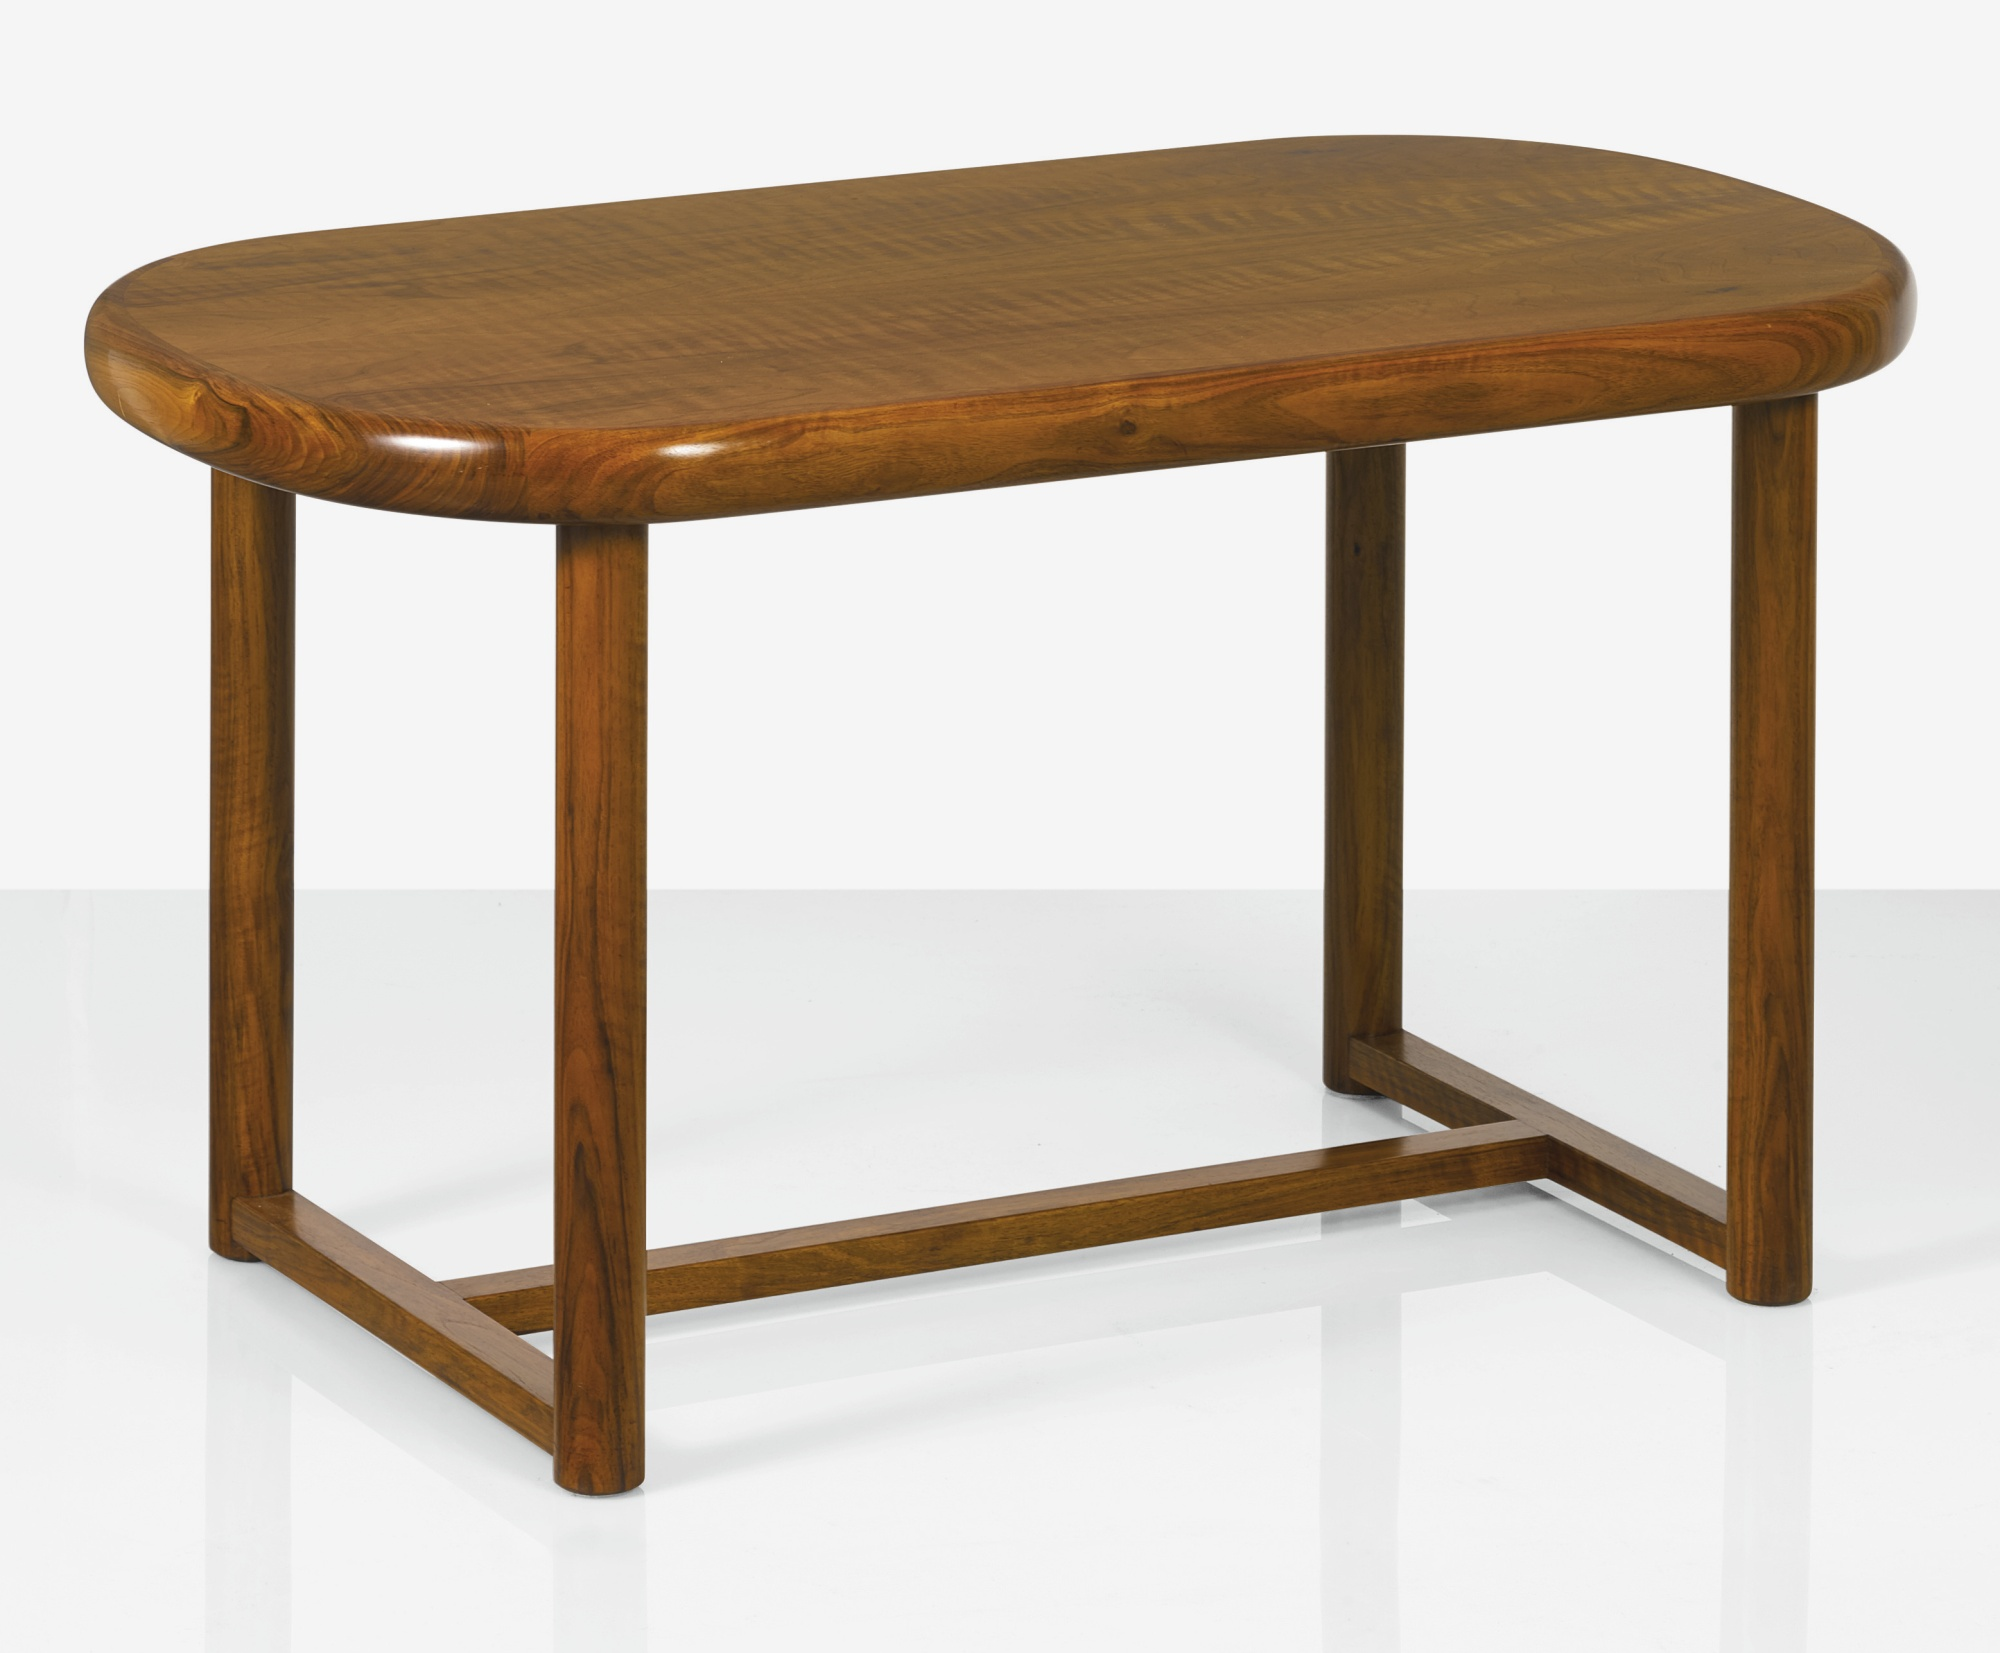 Flemming Lassen - Low Table-1938